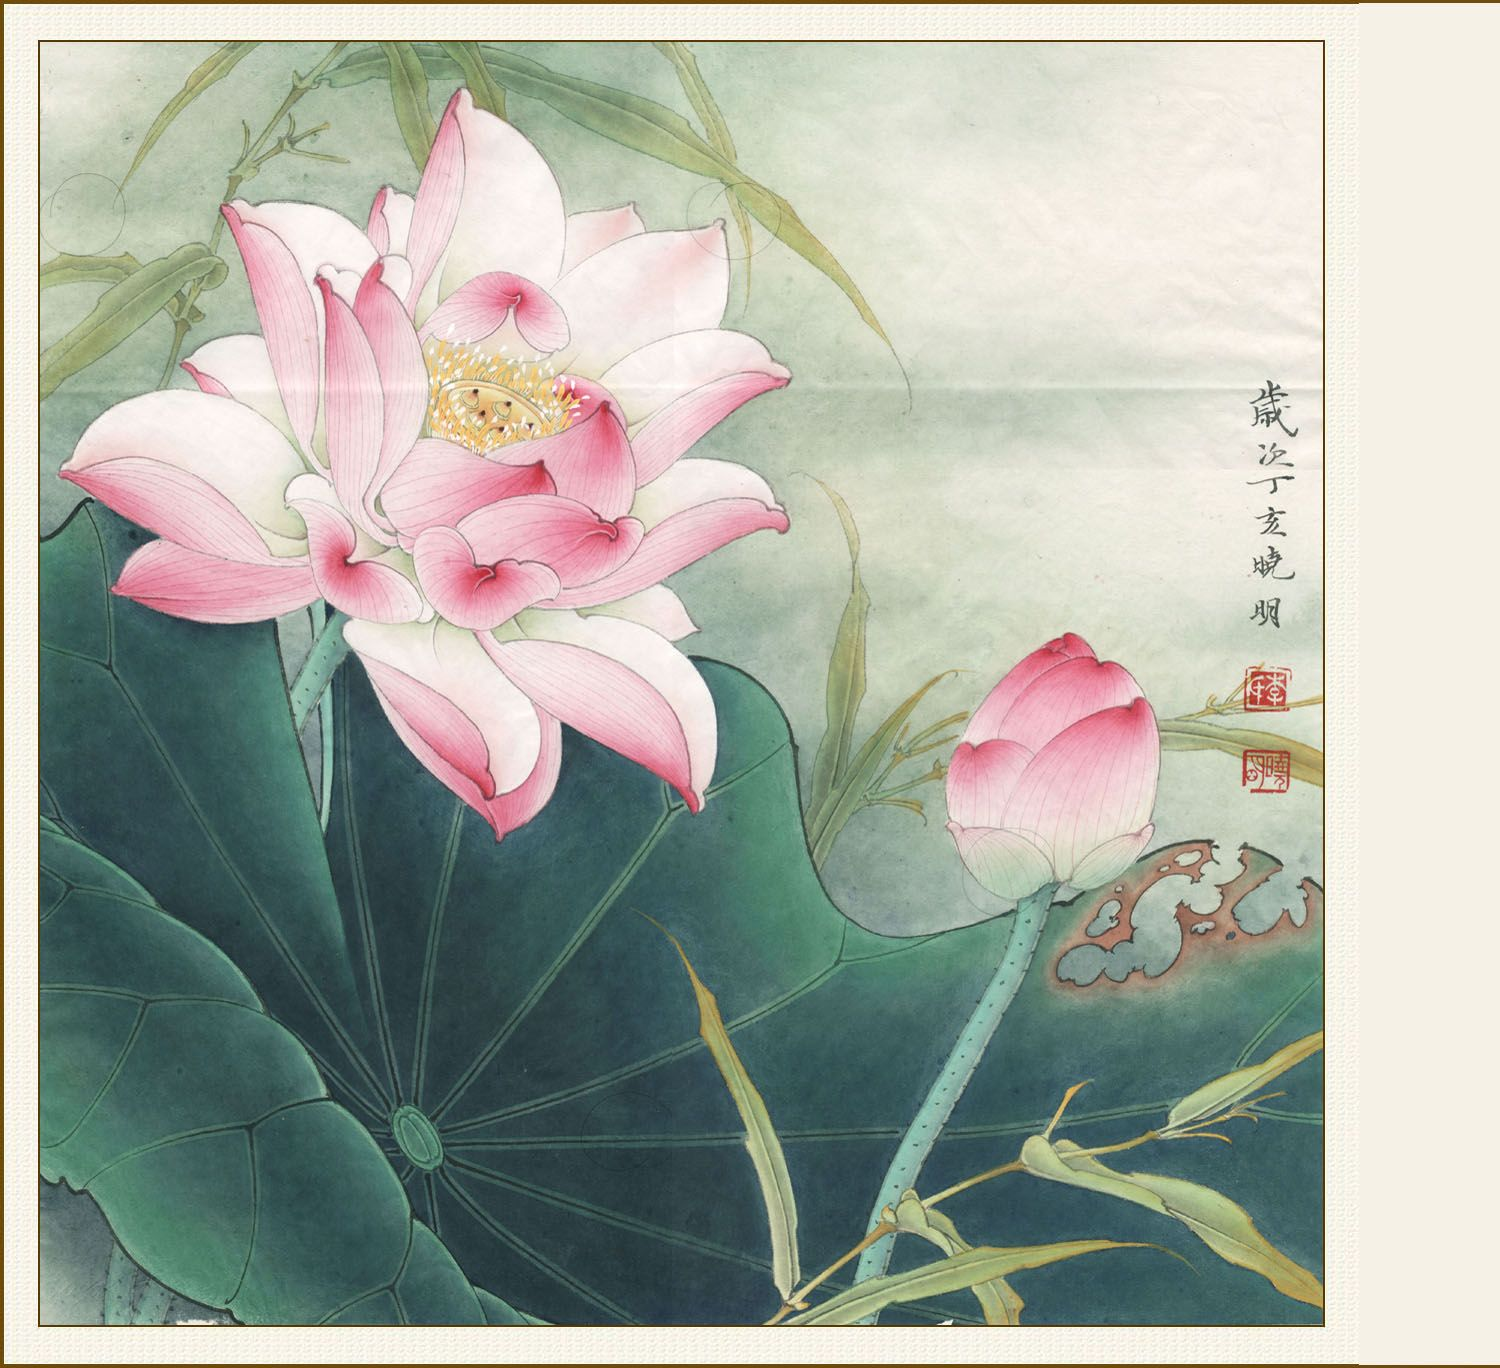 Pin by titimar somsri on pinterest lotus chinese chinese painting chinese art lotus flower japanese art lotus lotus flowers izmirmasajfo